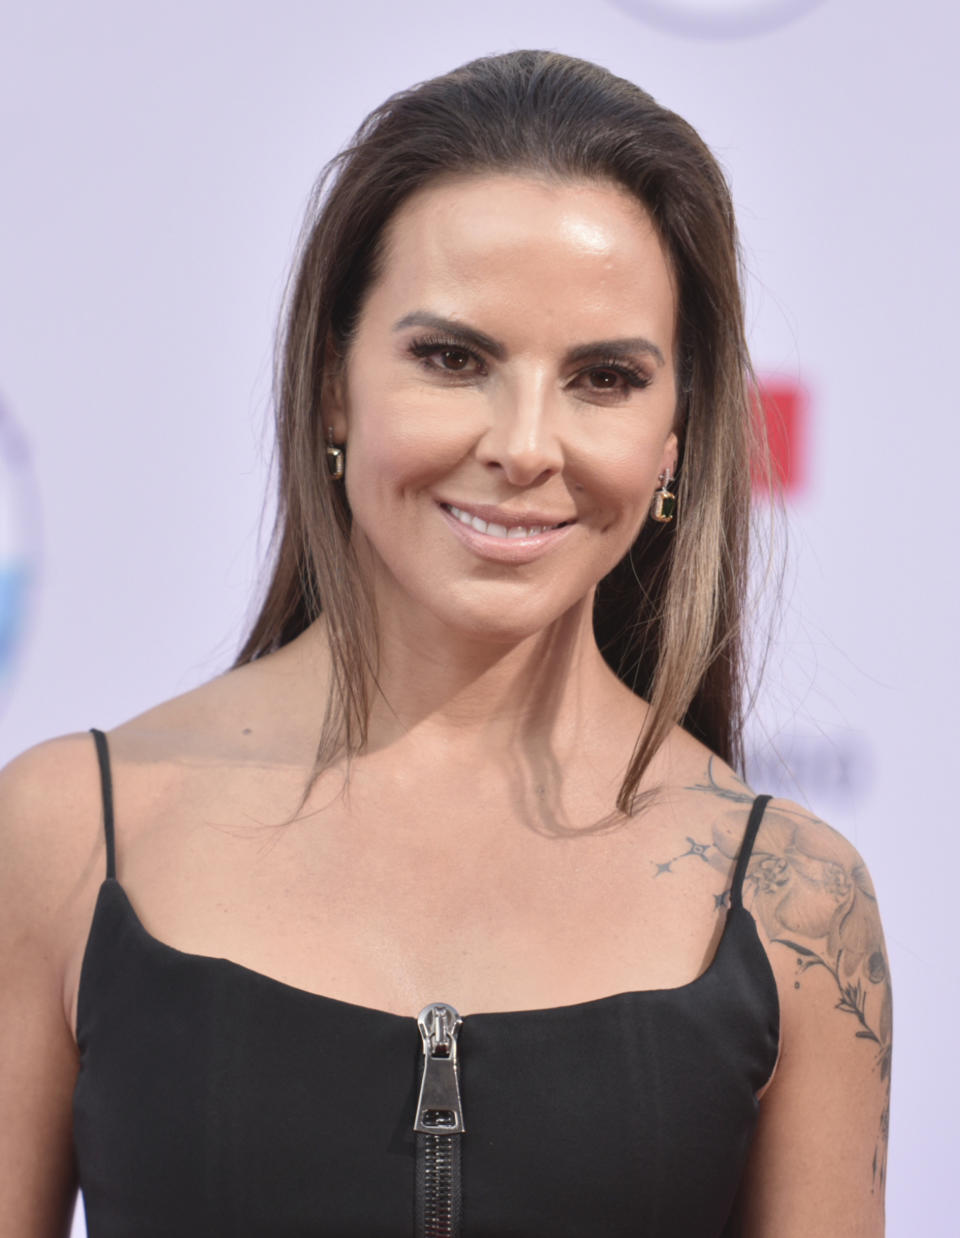 Kate del Castillo arrives at the Latin American Music Awards on Thursday, Oct. 17, 2019, at the Dolby Theatre in Los Angeles. (Photo by Richard Shotwell/Invision/AP)